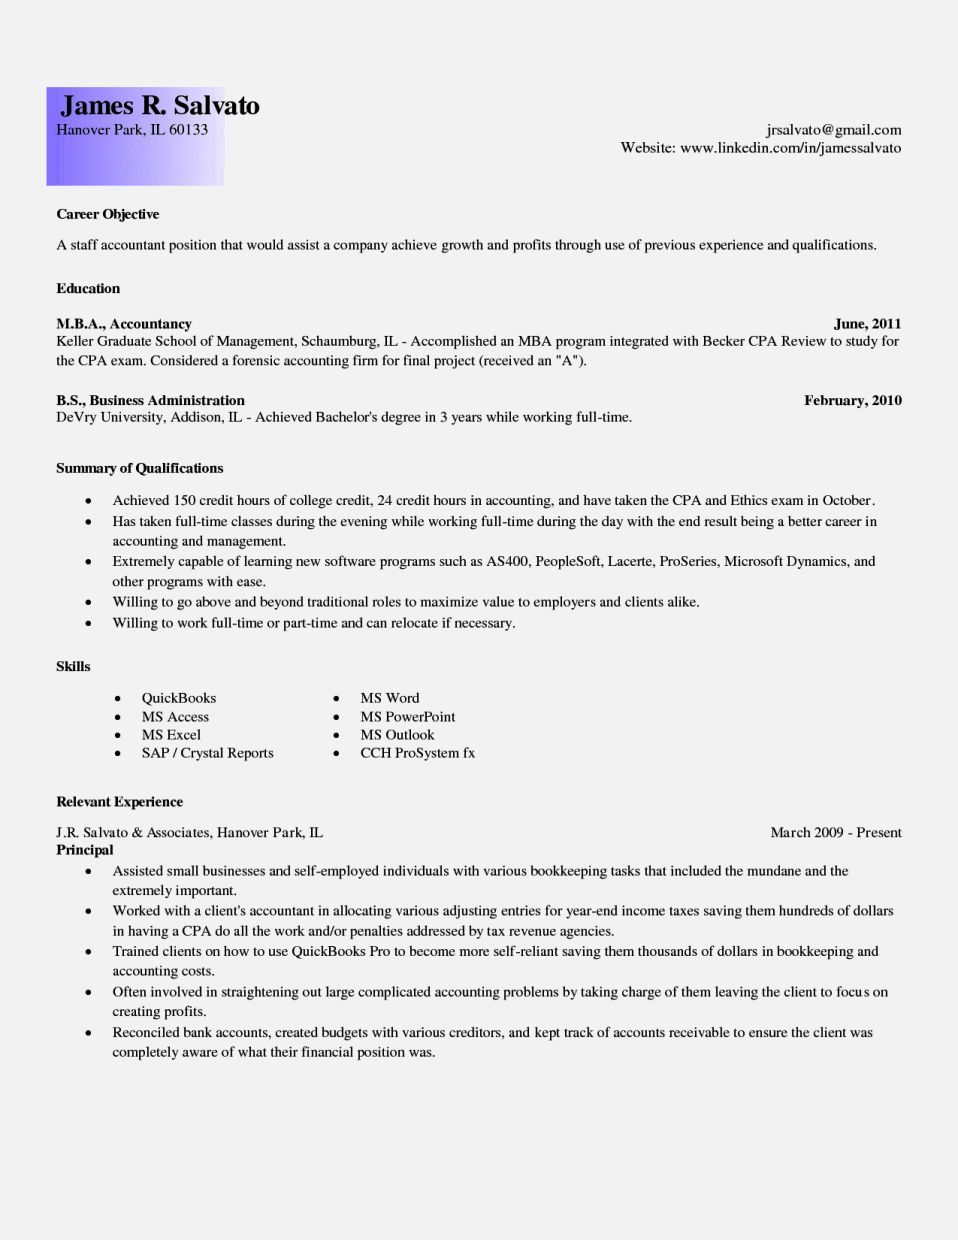 Entry Level Accounting Resumes Classy Httpinformationgateresumeletterentrylevelaccountant .